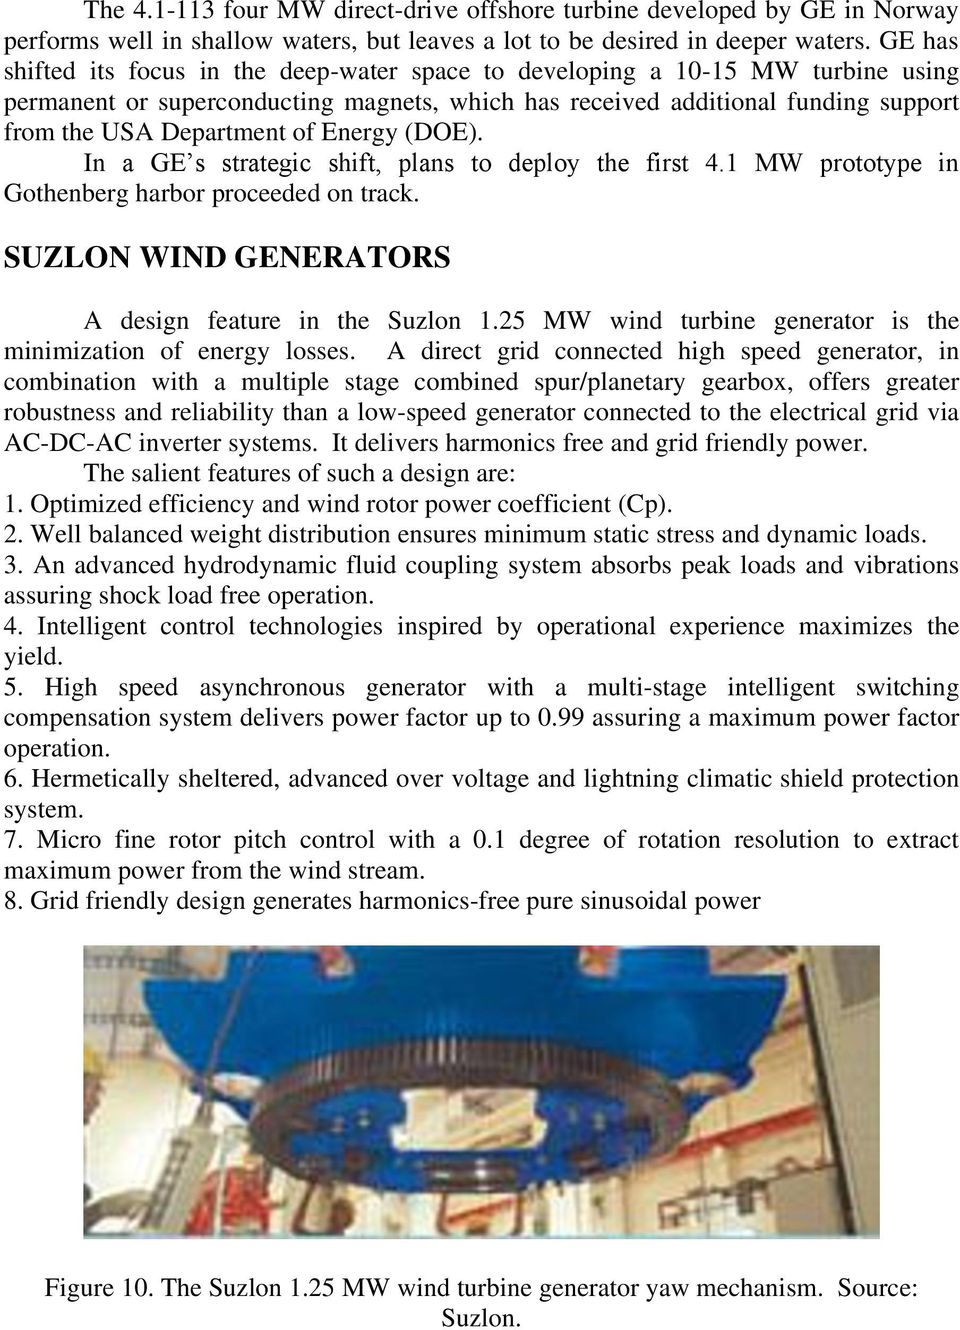 Modern Wind Generators Pdf Pmg Generator Diagram Sometimes The Is Already In Use Energy Doe A Ge S Strategic Shift Plans To Deploy